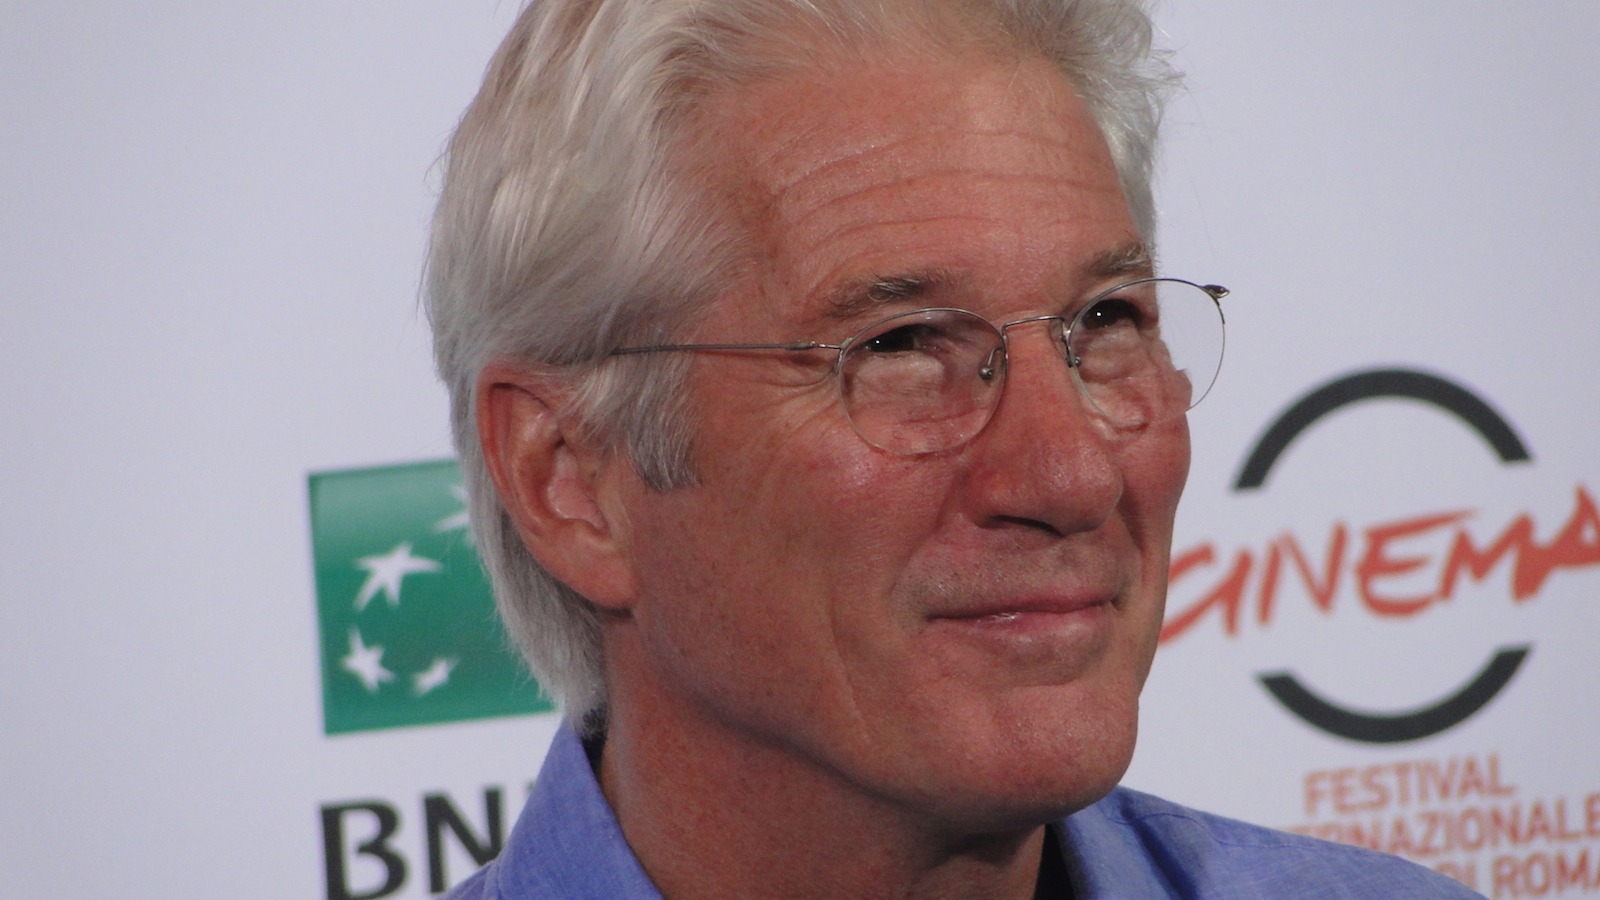 Richard Gere a Roma 2014 per Time Out of Mind